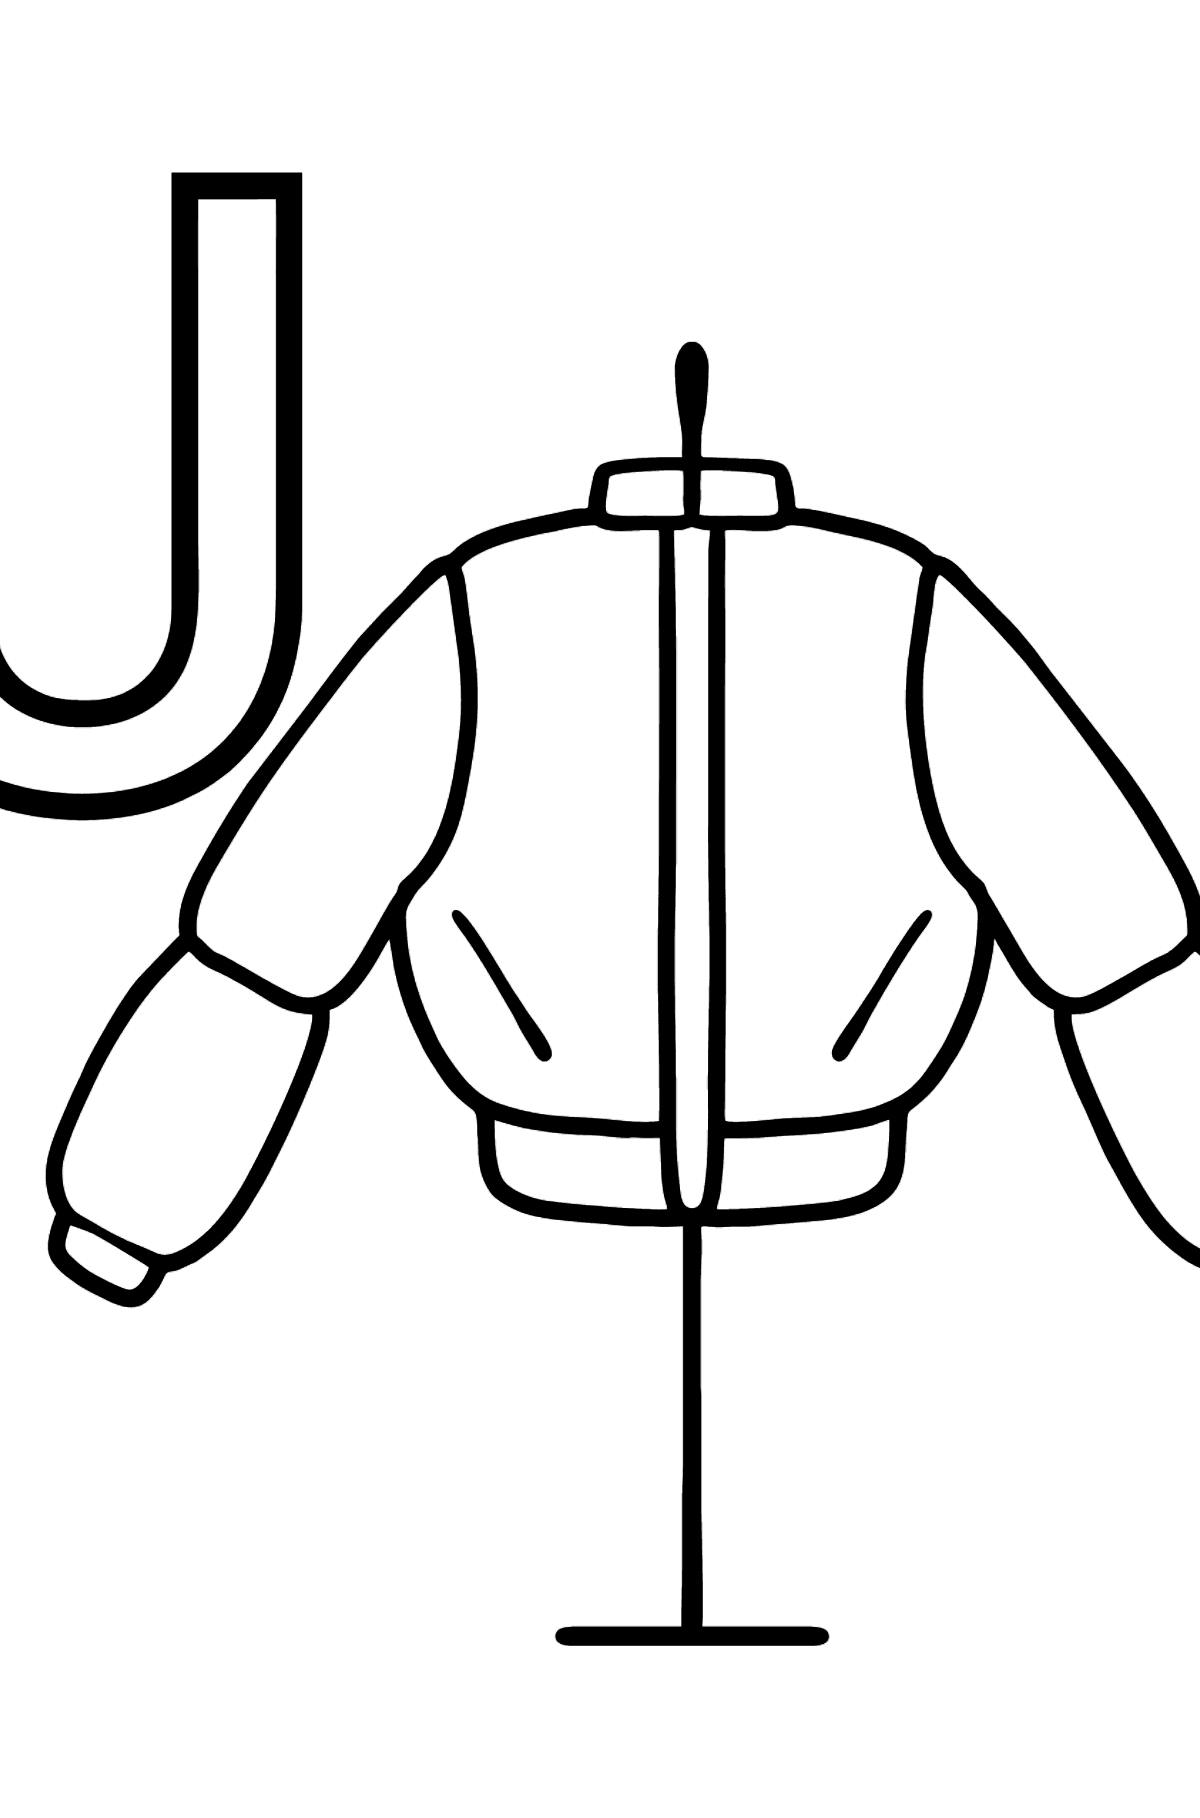 German Letter J coloring pages - JACKE - Coloring Pages for Kids